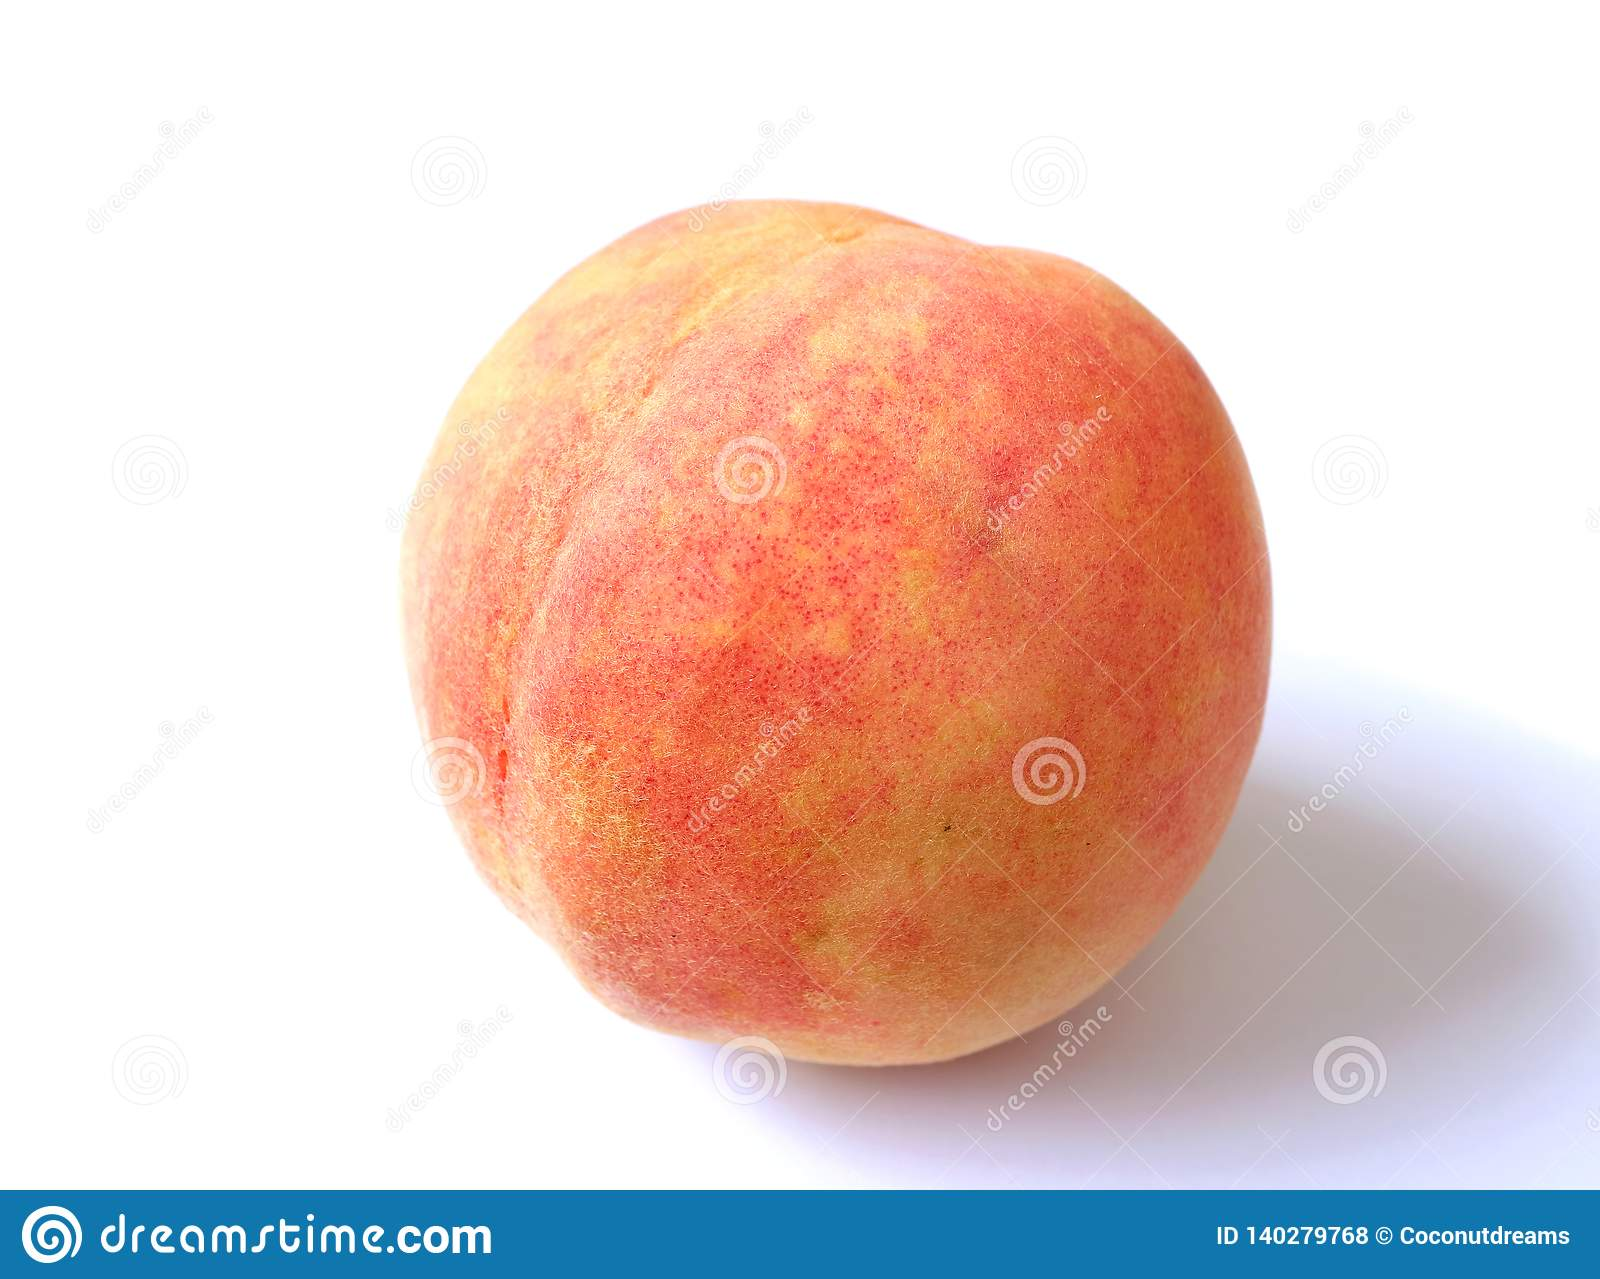 Closed Up a Fresh Ripe Peach Isolated on White Background